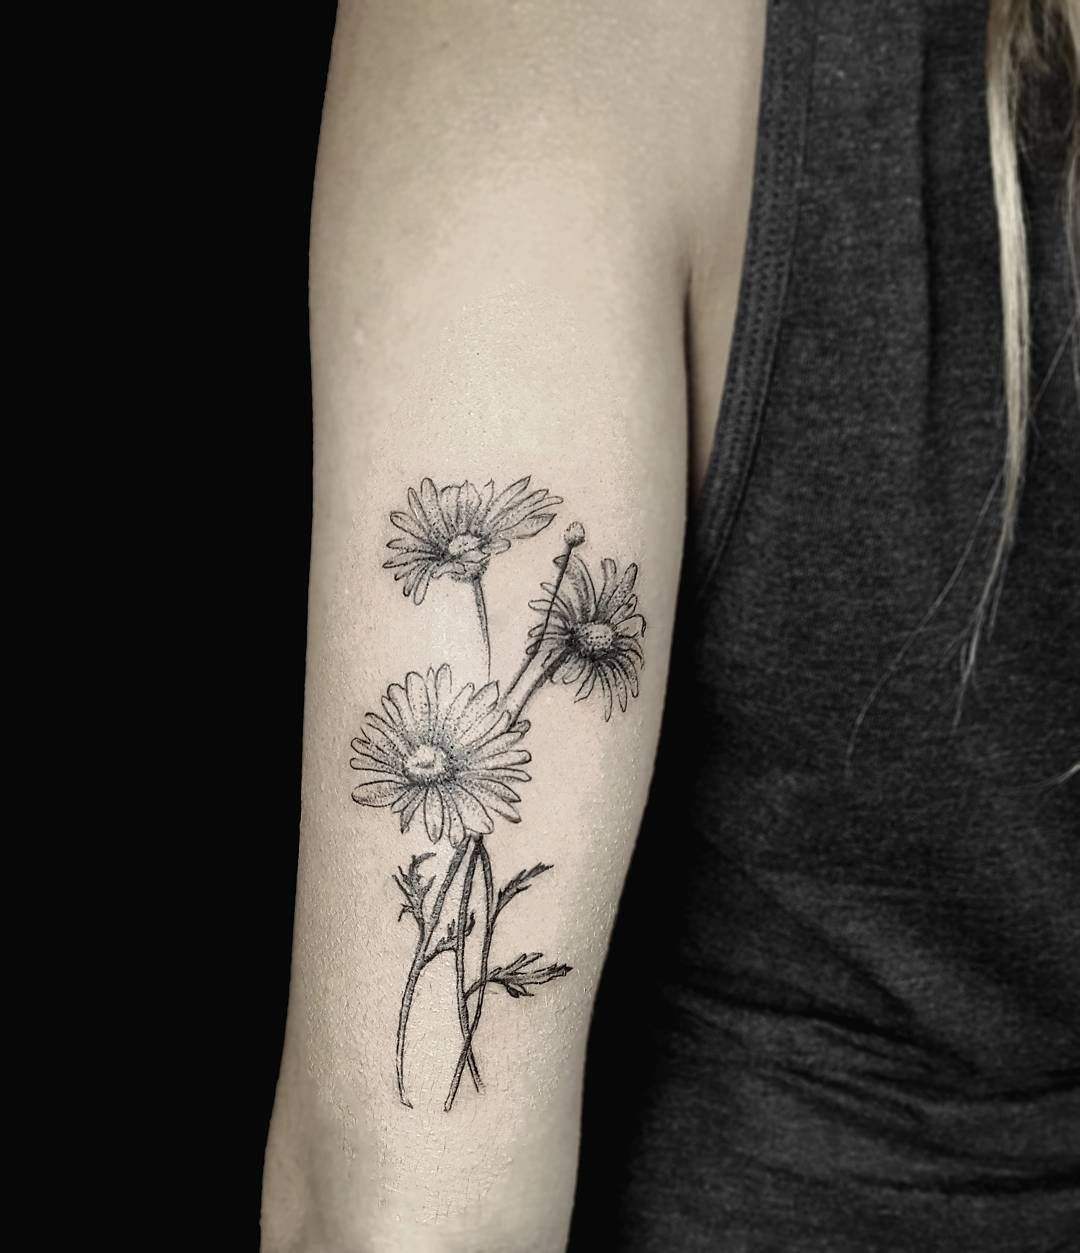 60 Delicate Floral Tattoo Designs for Girls | Trending Tattoo